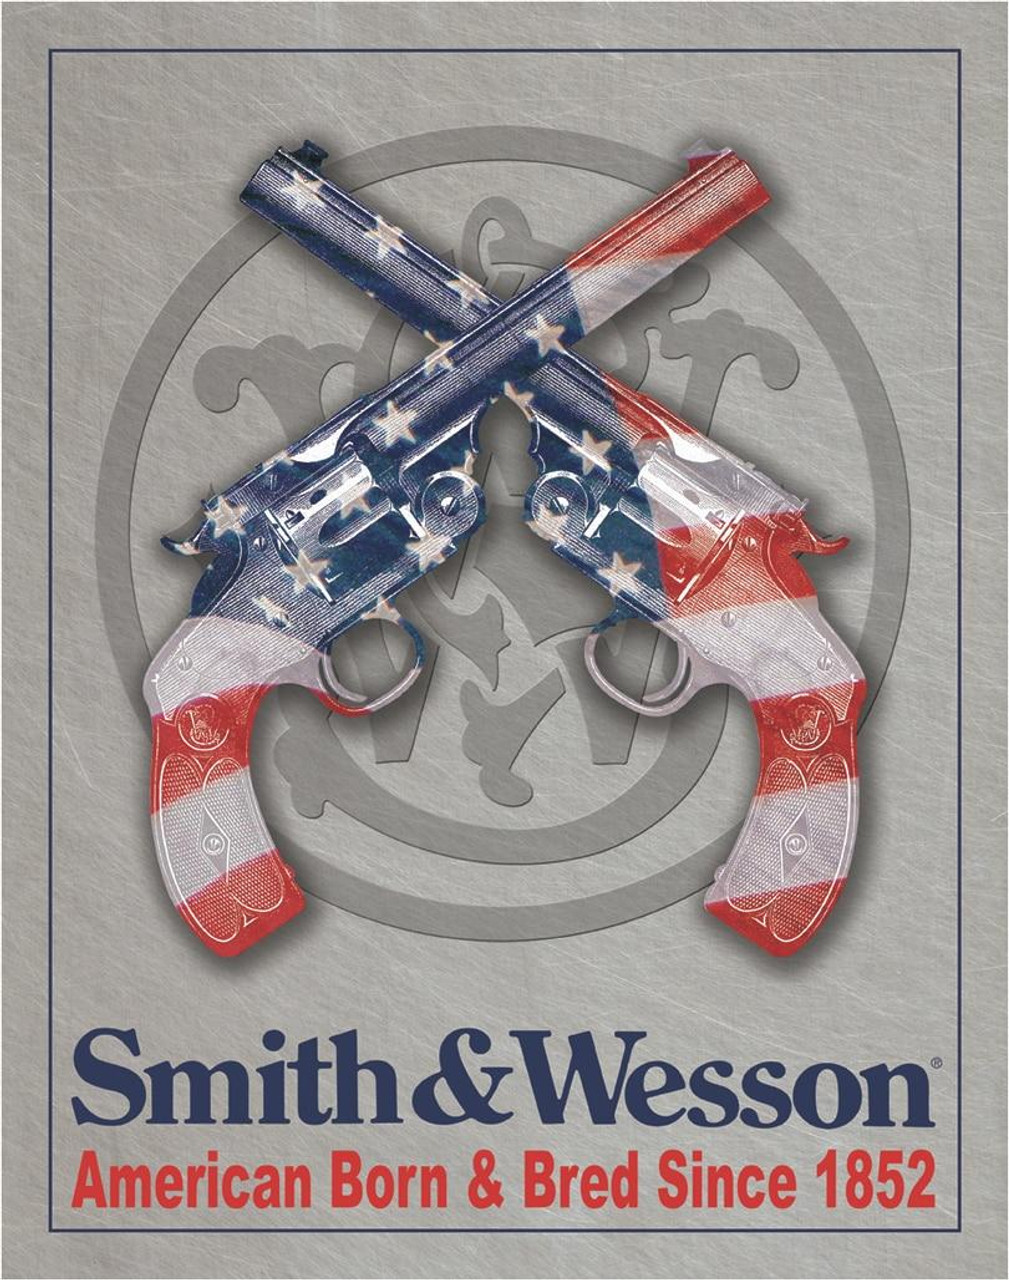 Smith and Wesson SandW - American Born